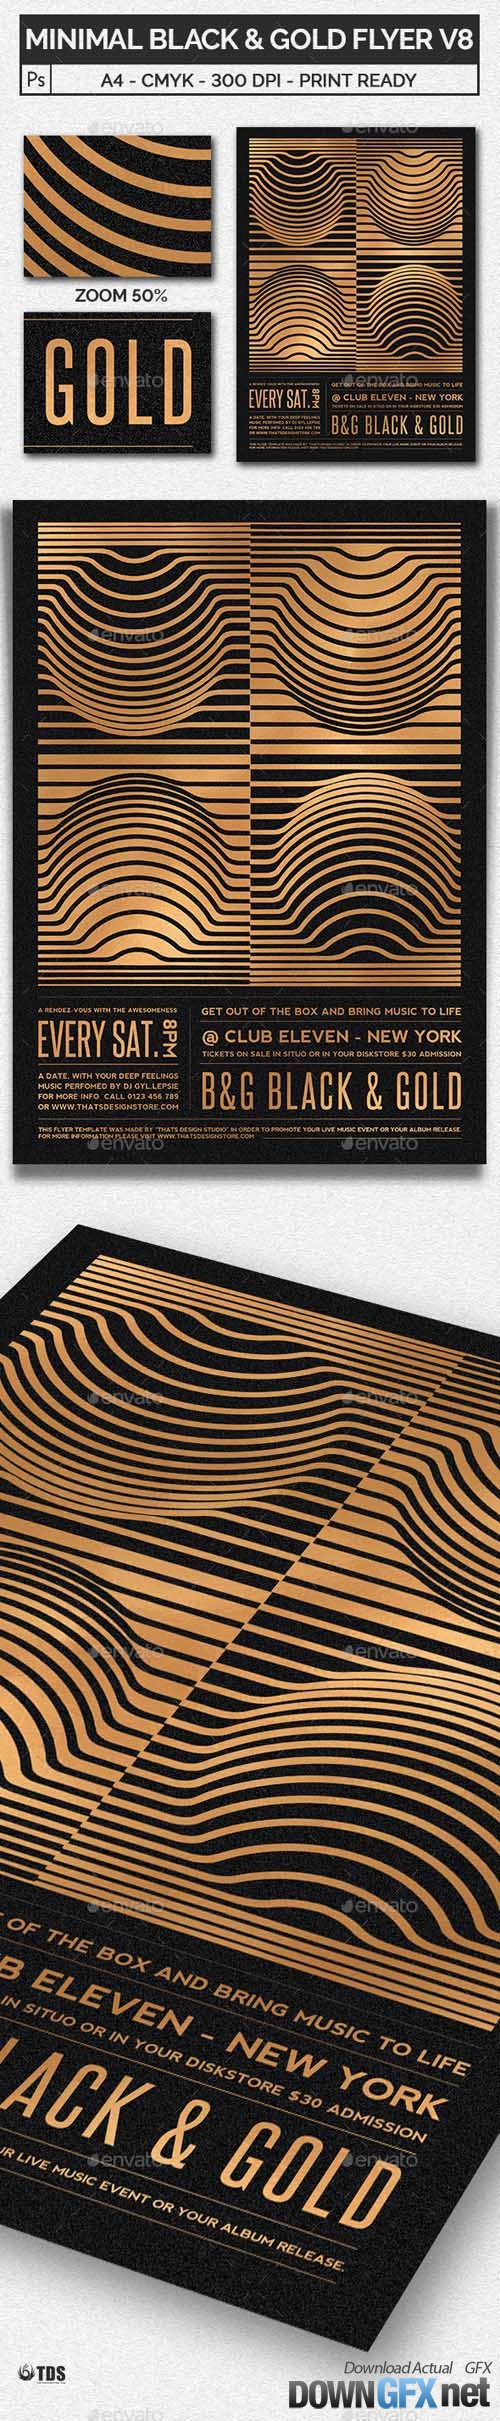 Minimal Black and Gold Flyer Template V8 20509036